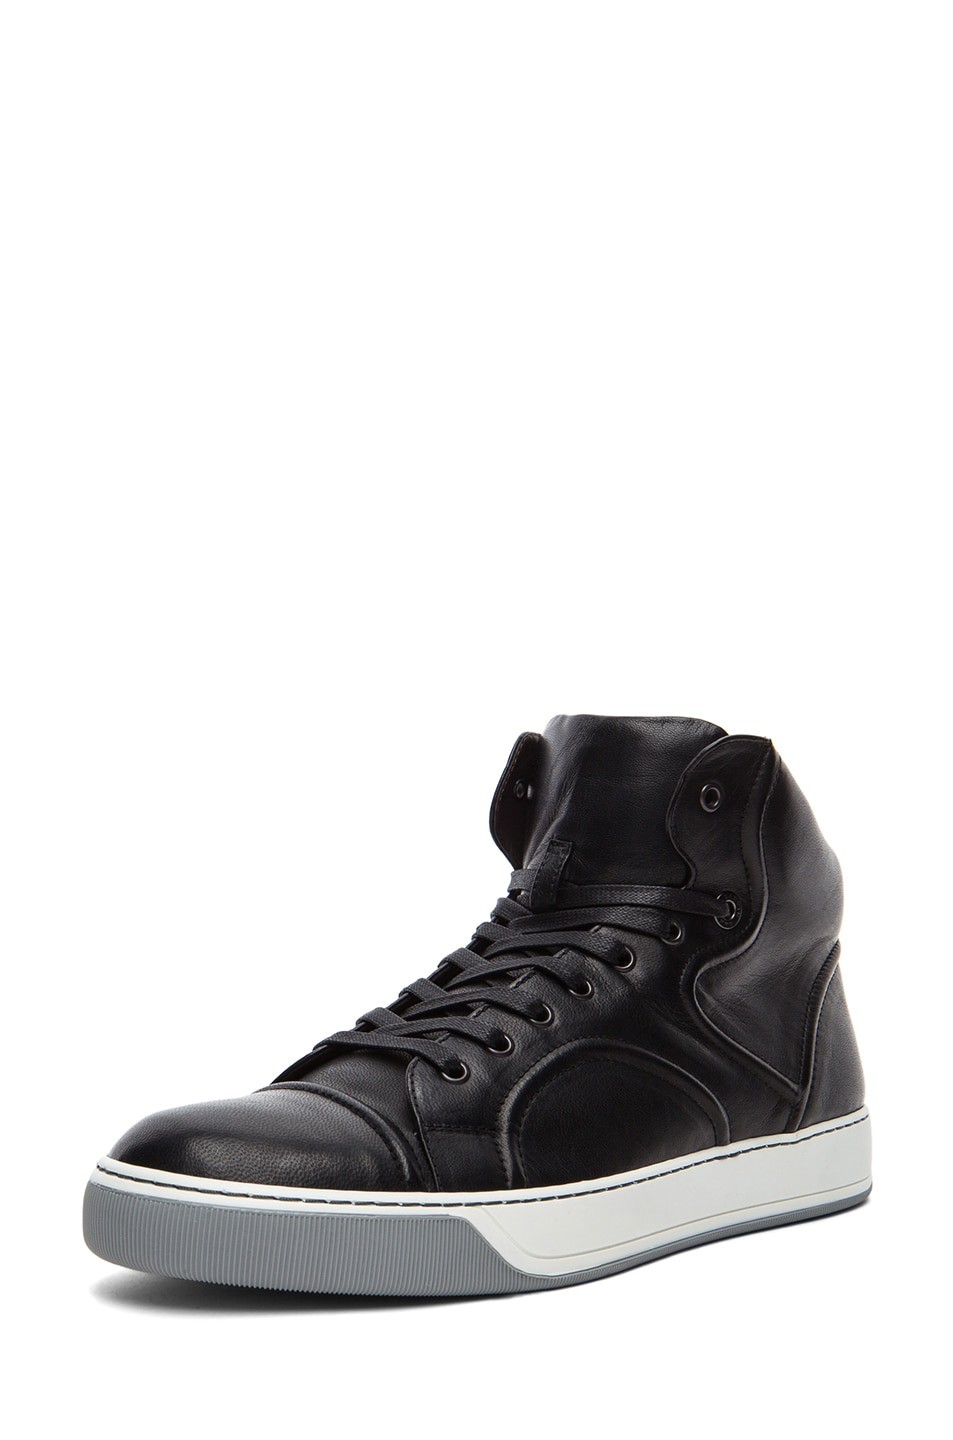 98c2c5ffe7 Image 1 of Lanvin Relie Nappa Lambskin Leather Mid High Top Sneakers in  Black